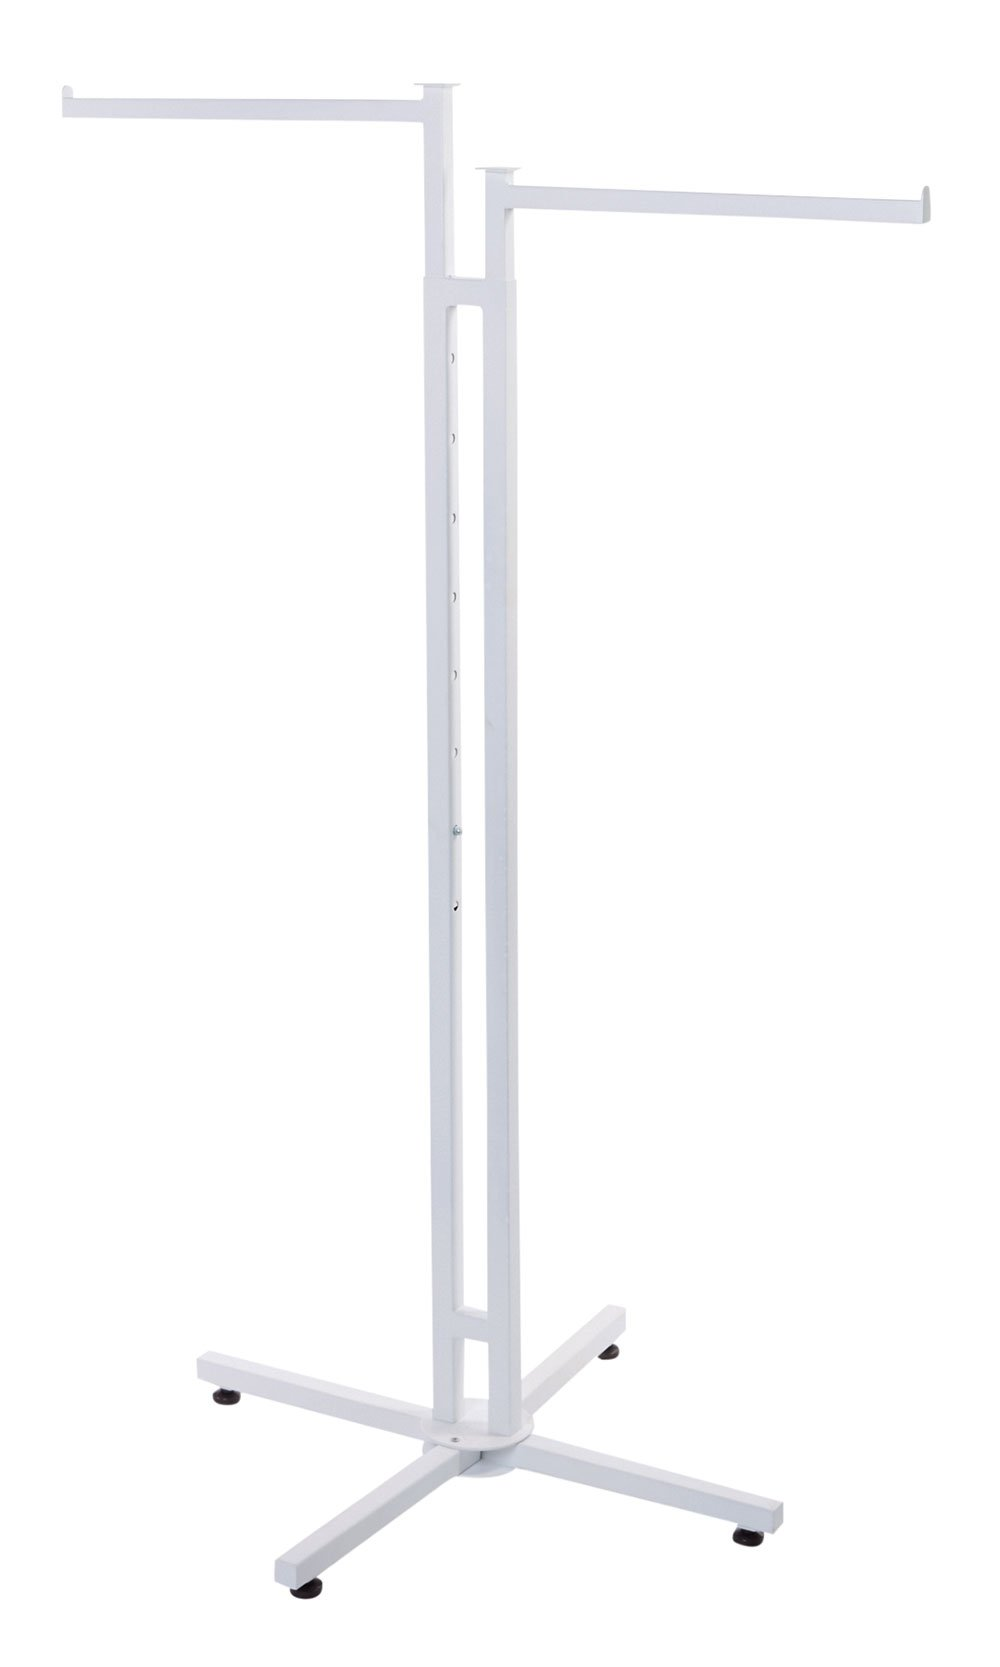 SSWBasics White 2-Way Clothing Rack with Straight Arms